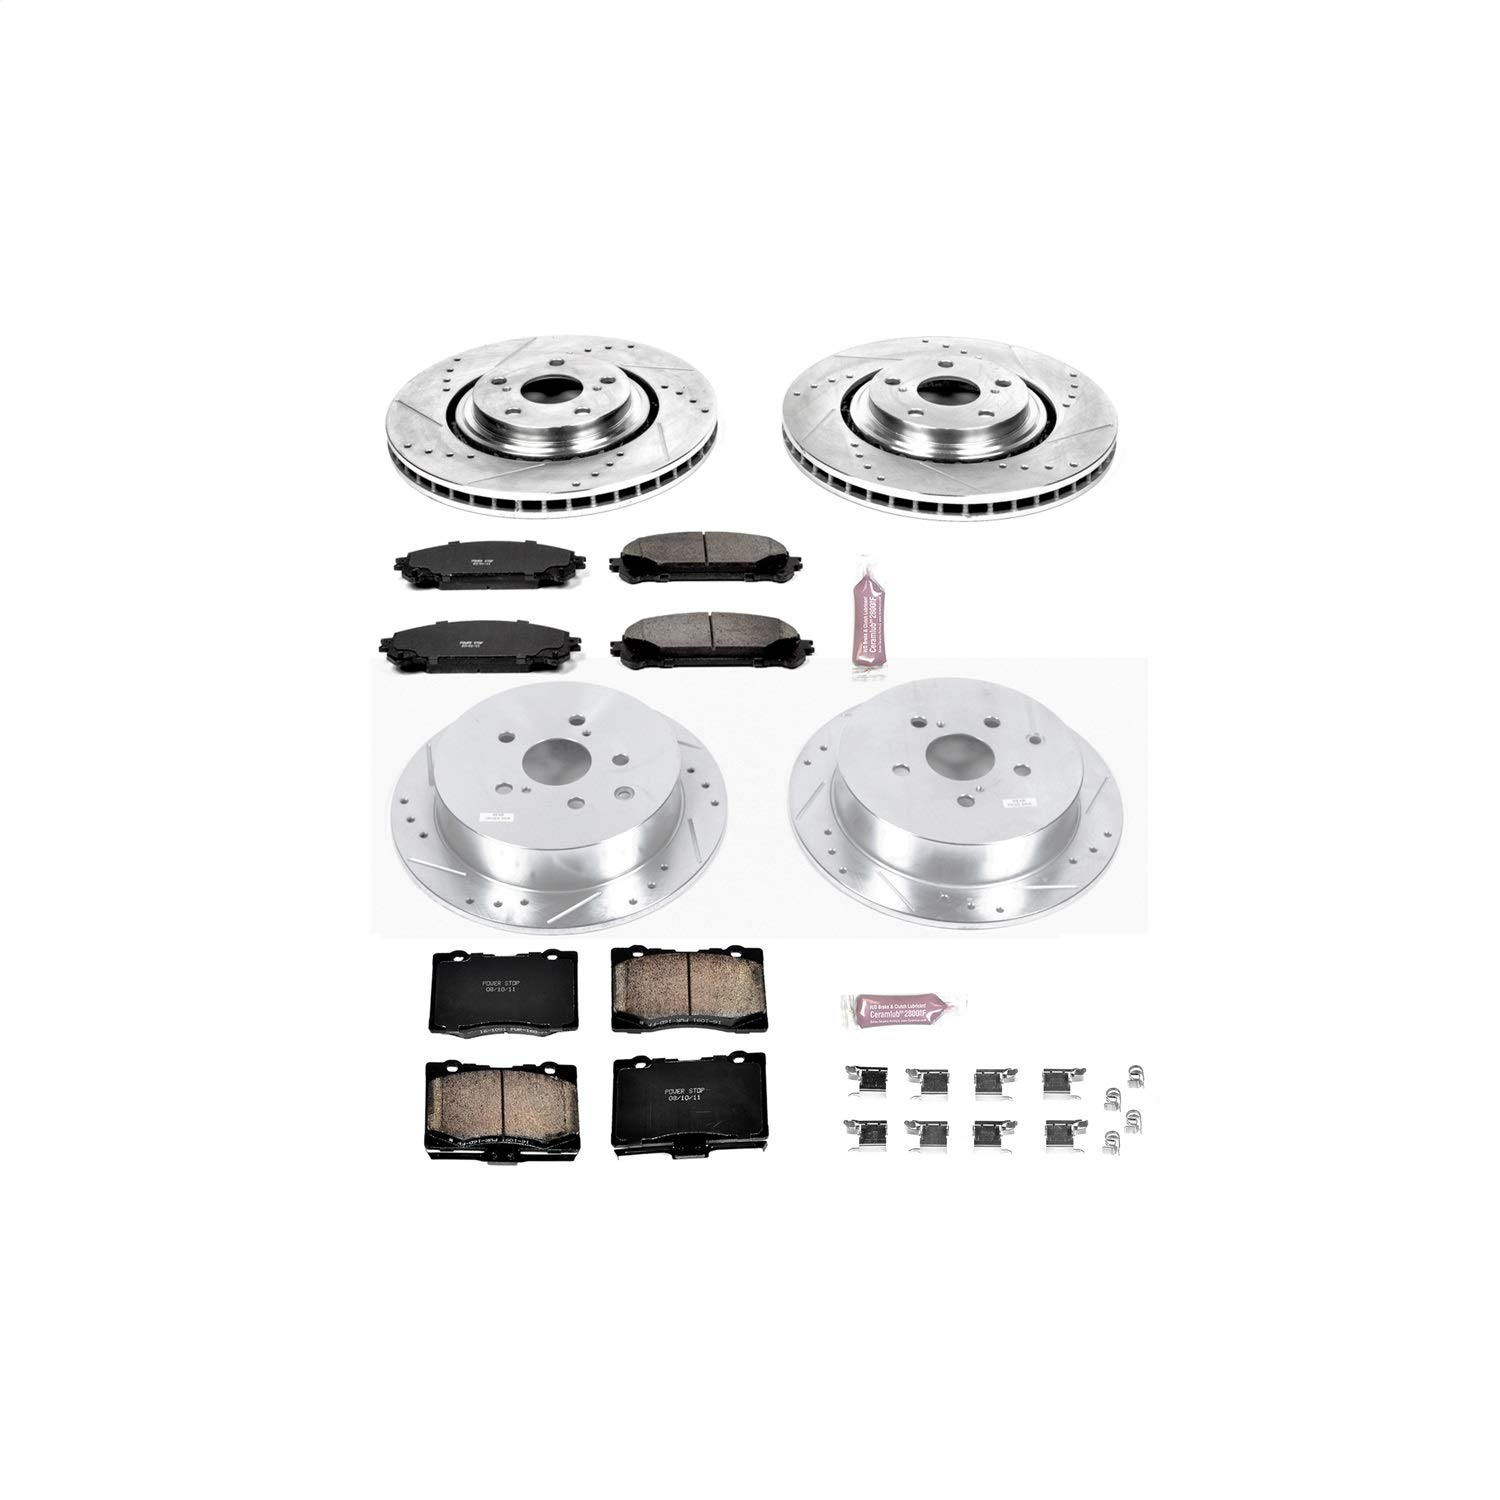 Power Stop K5828 Front & Rear Brake Kit with Drilled/Slotted Brake Rotors and Z23 Evolution Ceramic Brake Pads by POWERSTOP